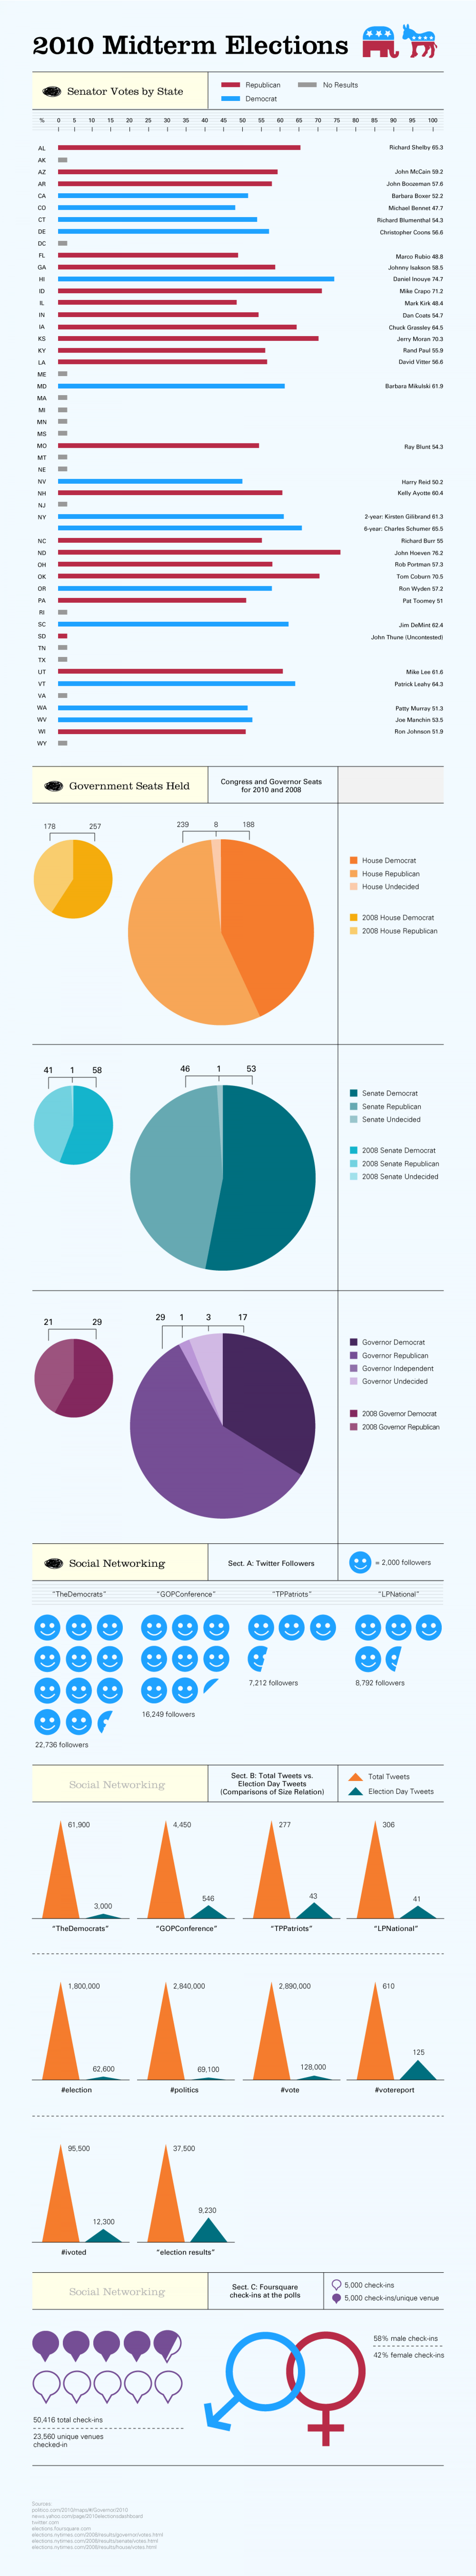 2010 Midterm Elections Infographic